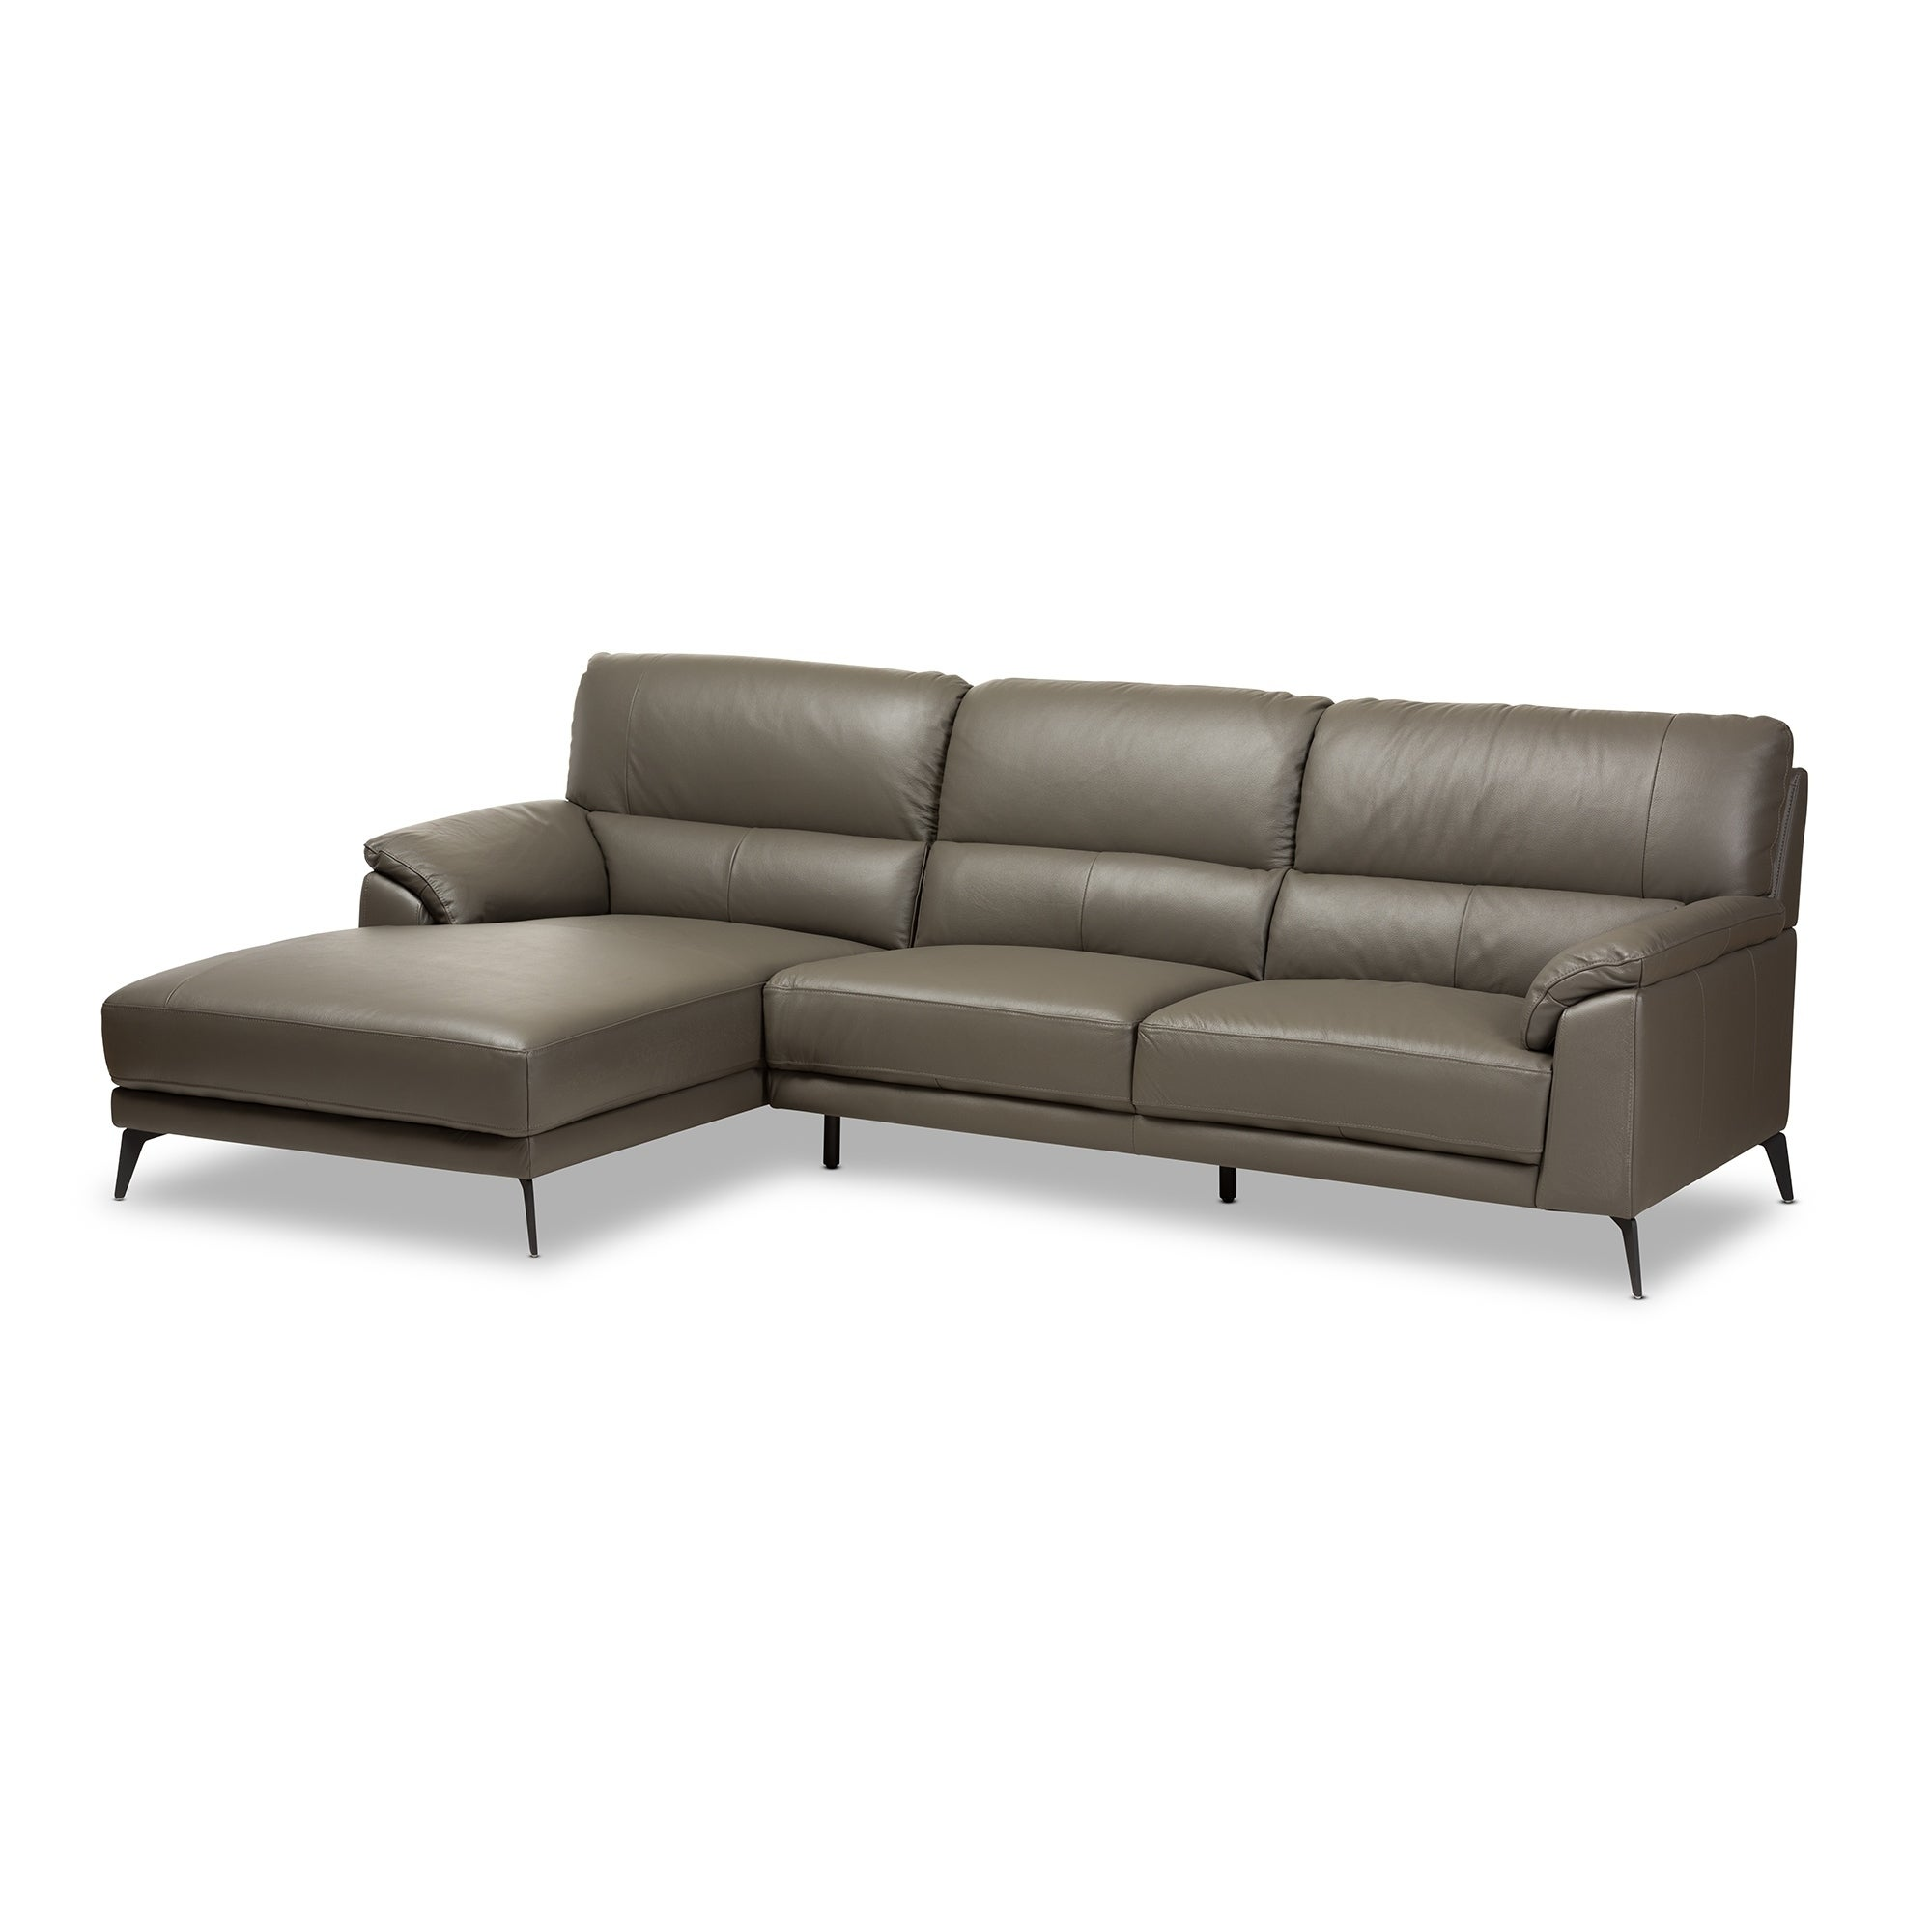 w track sofa chaise sectional with couch block usa arm premium leather